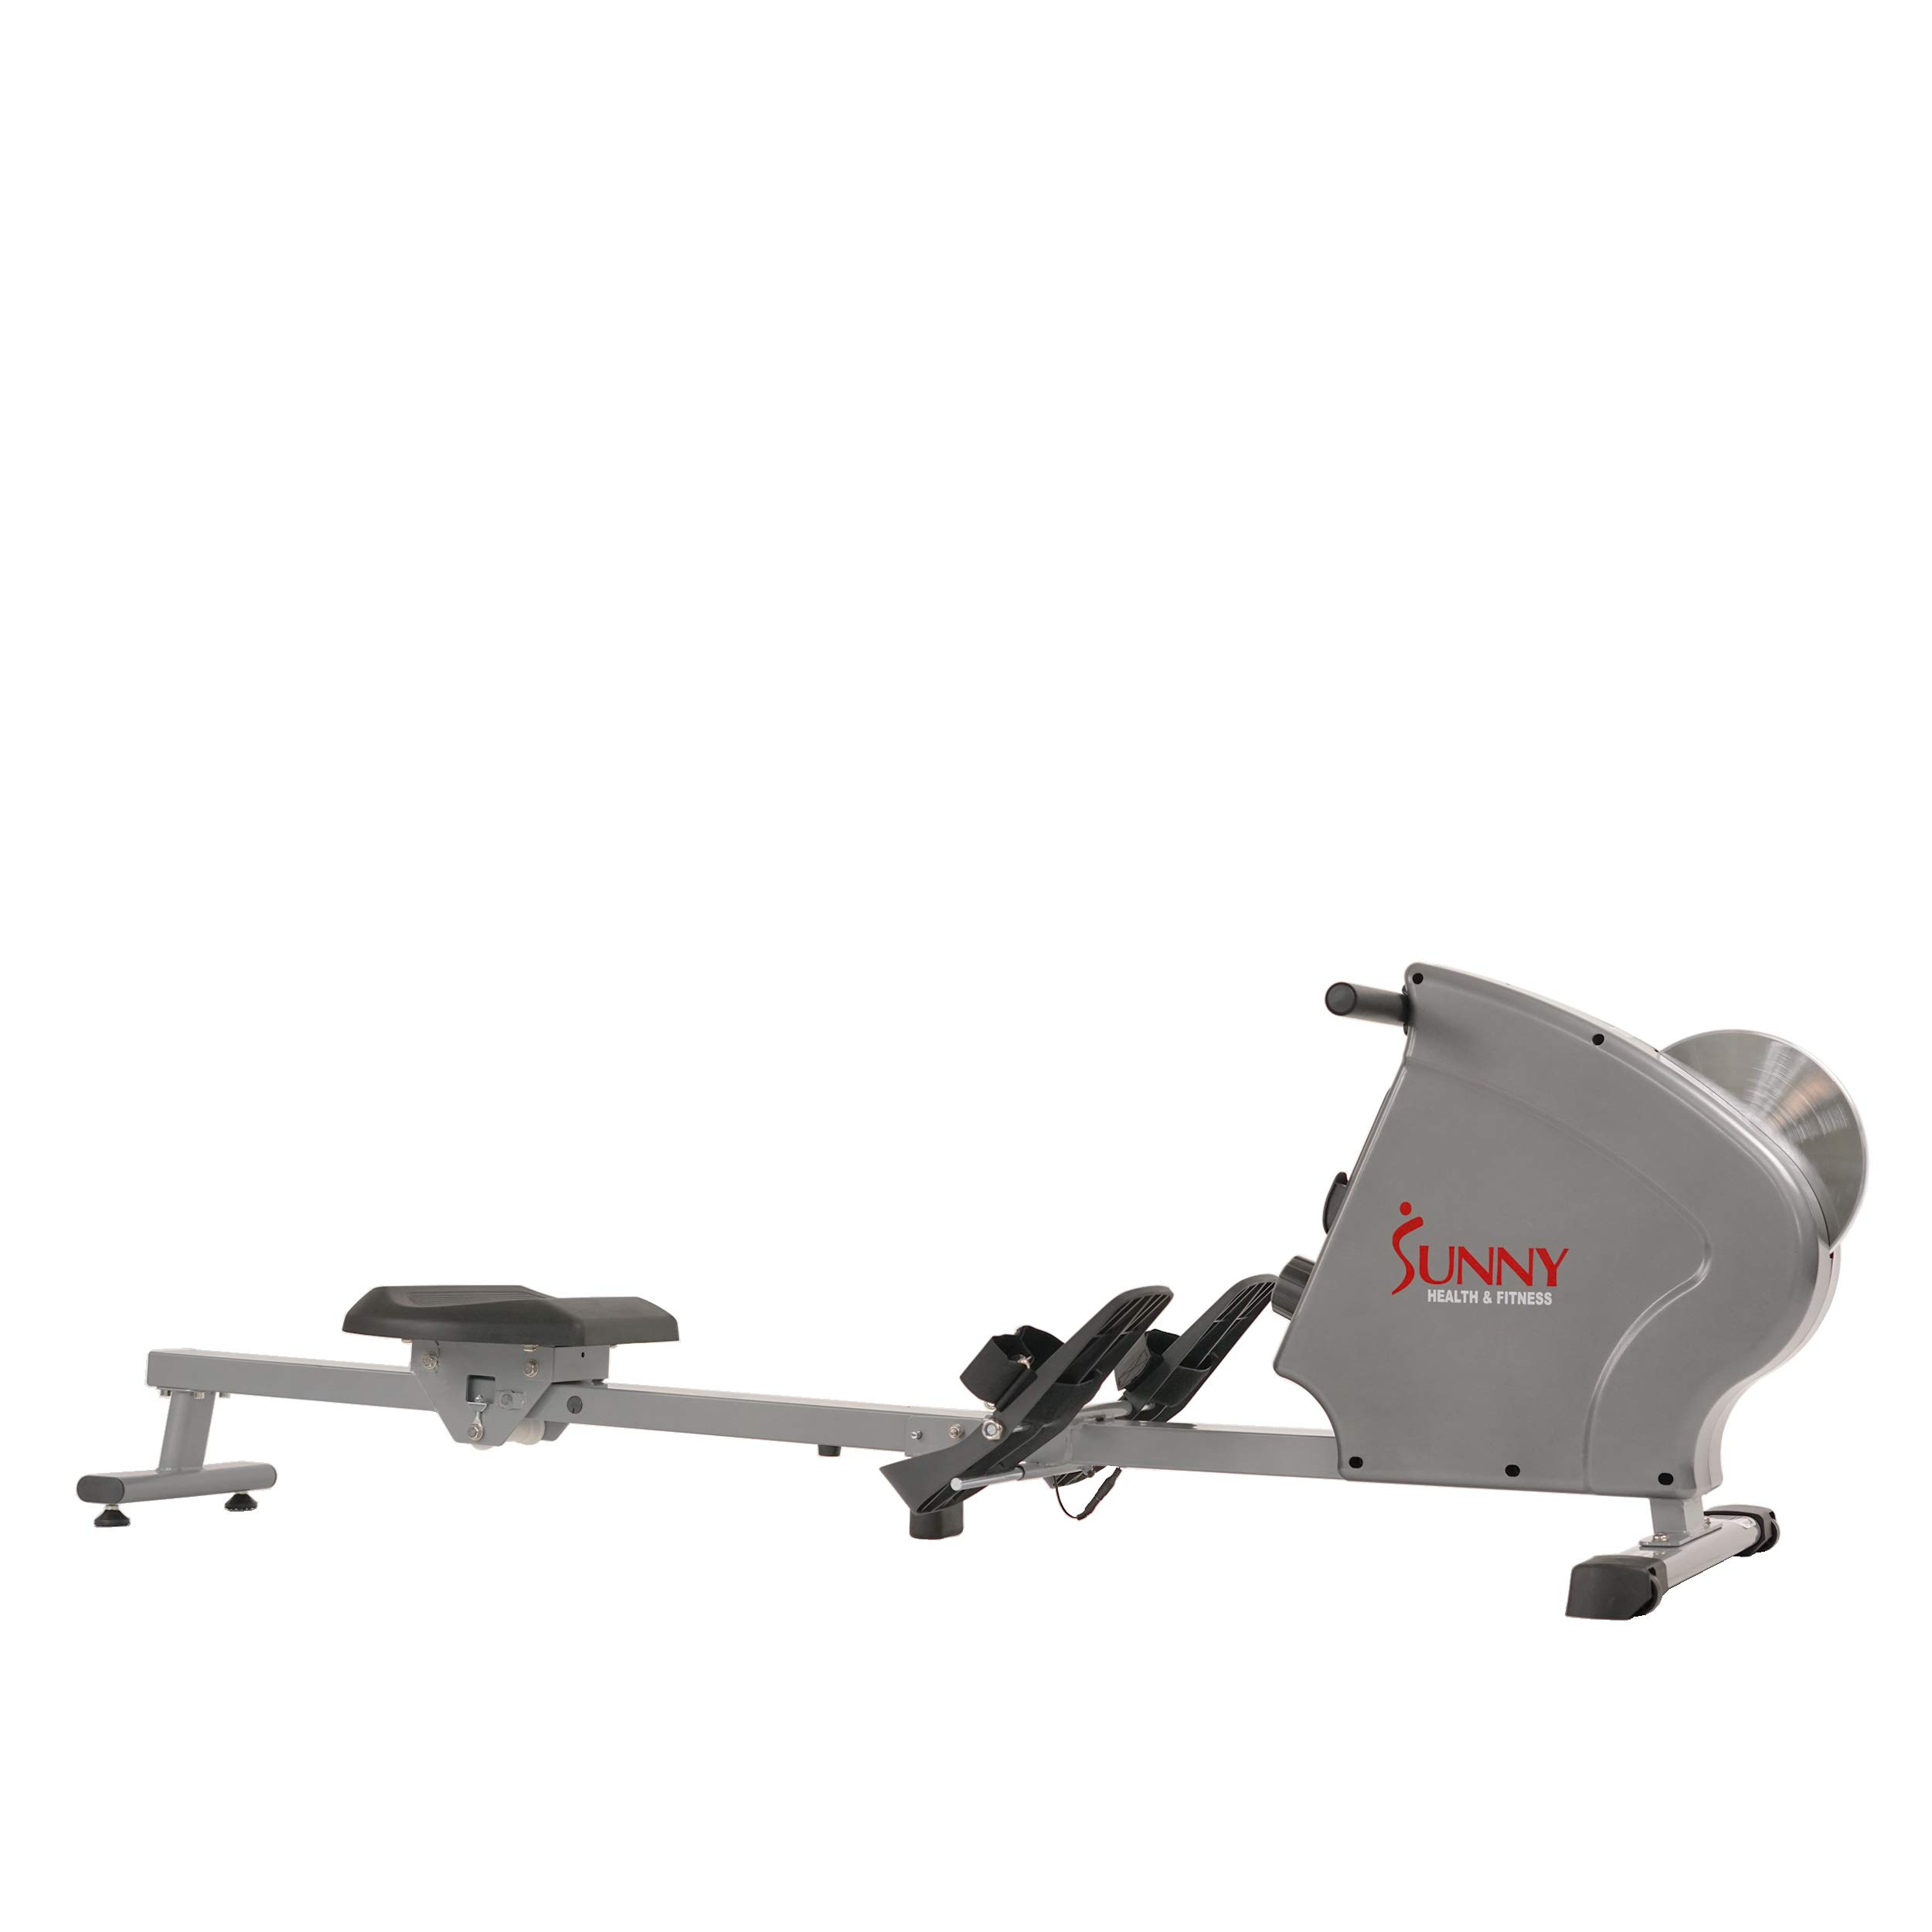 Sunny Health & Fitness SF-RW5856 Magnetic Rowing Machine Rower, 11 lb. Flywheel and LCD Monitor with Tablet Holder, Gray by Sunny Health & Fitness (Image #8)